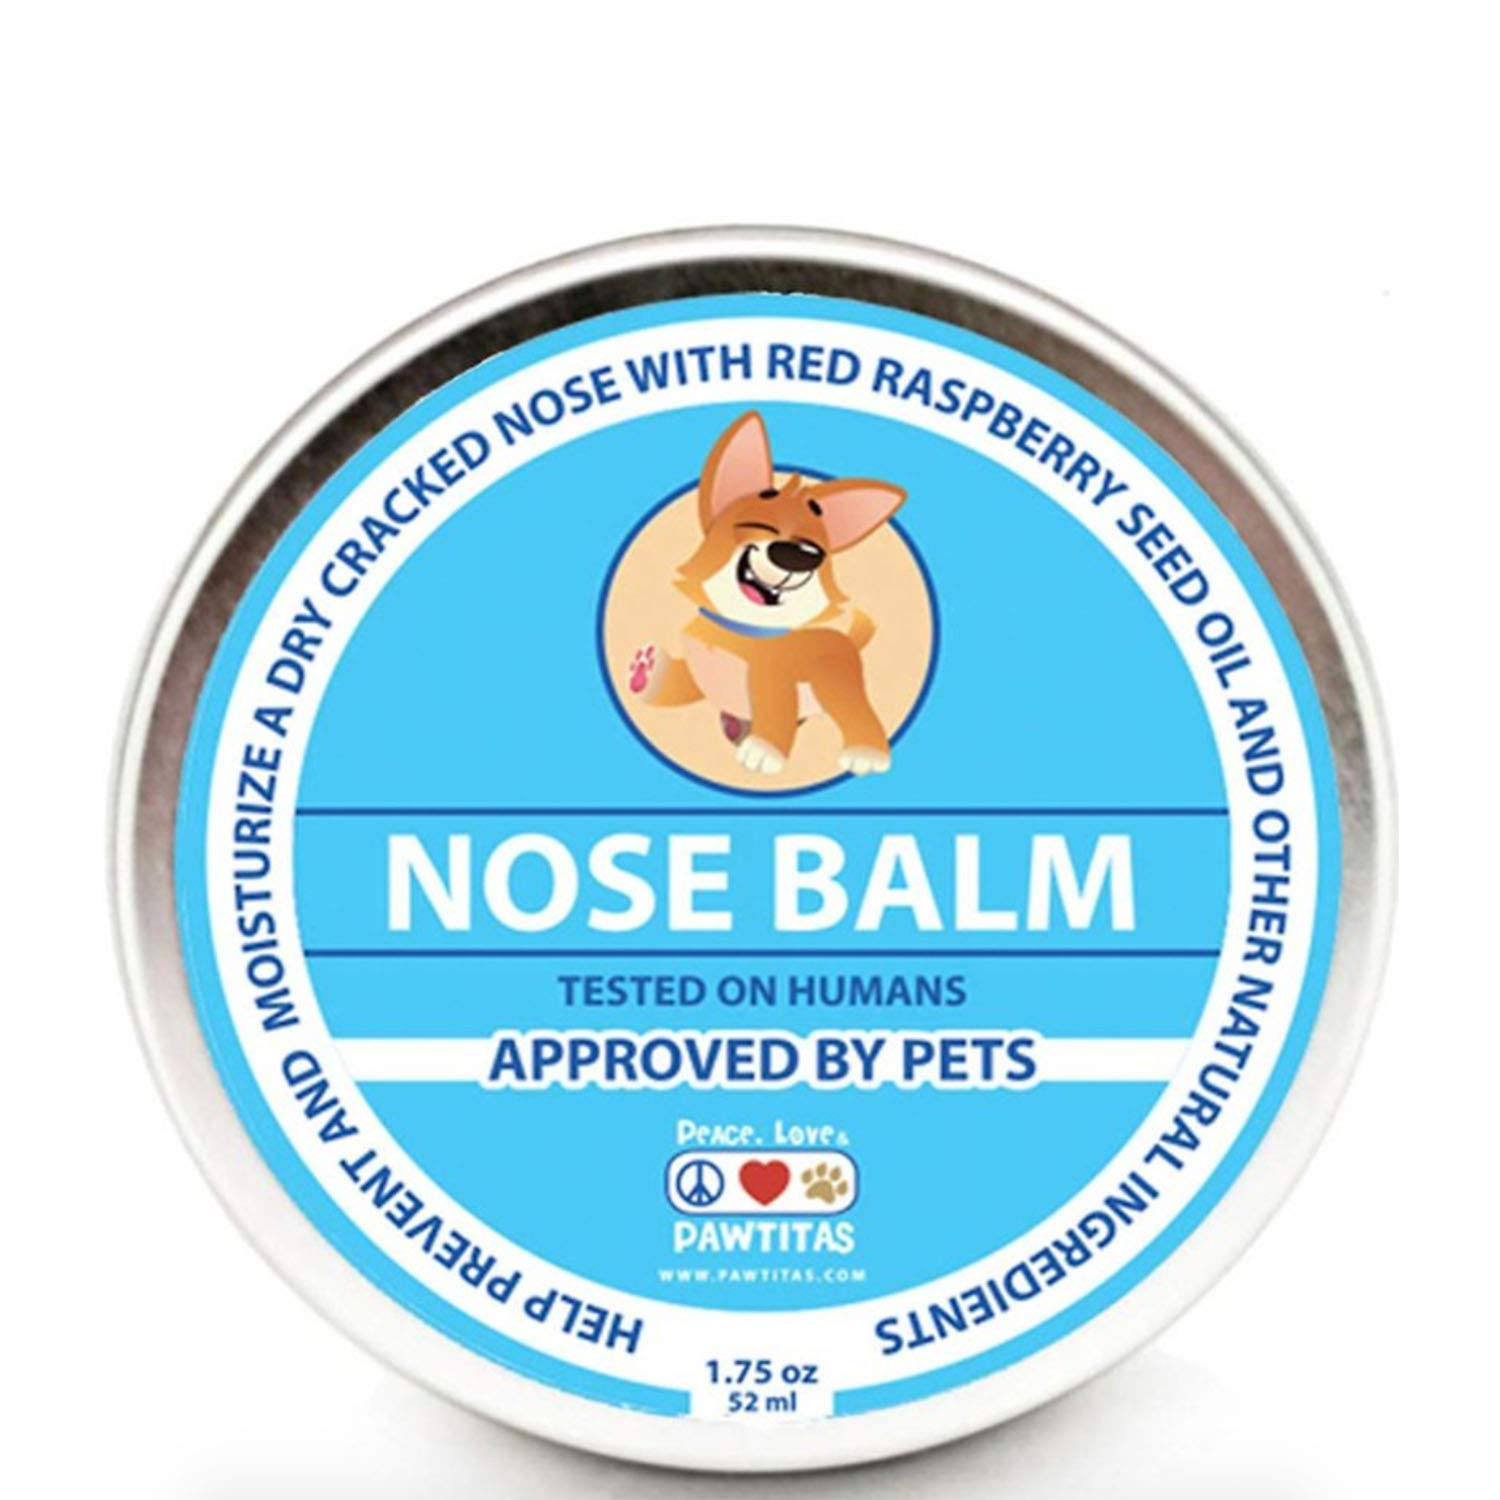 Pawtitas Nose Balm for Dogs is Made for Moisturizers Dry, Chapped, Cracked, and Crusty Dog Noses Providing a Layer of Protection on Your Dog Snout. | Manufactured with Certified Organic Ingredients.